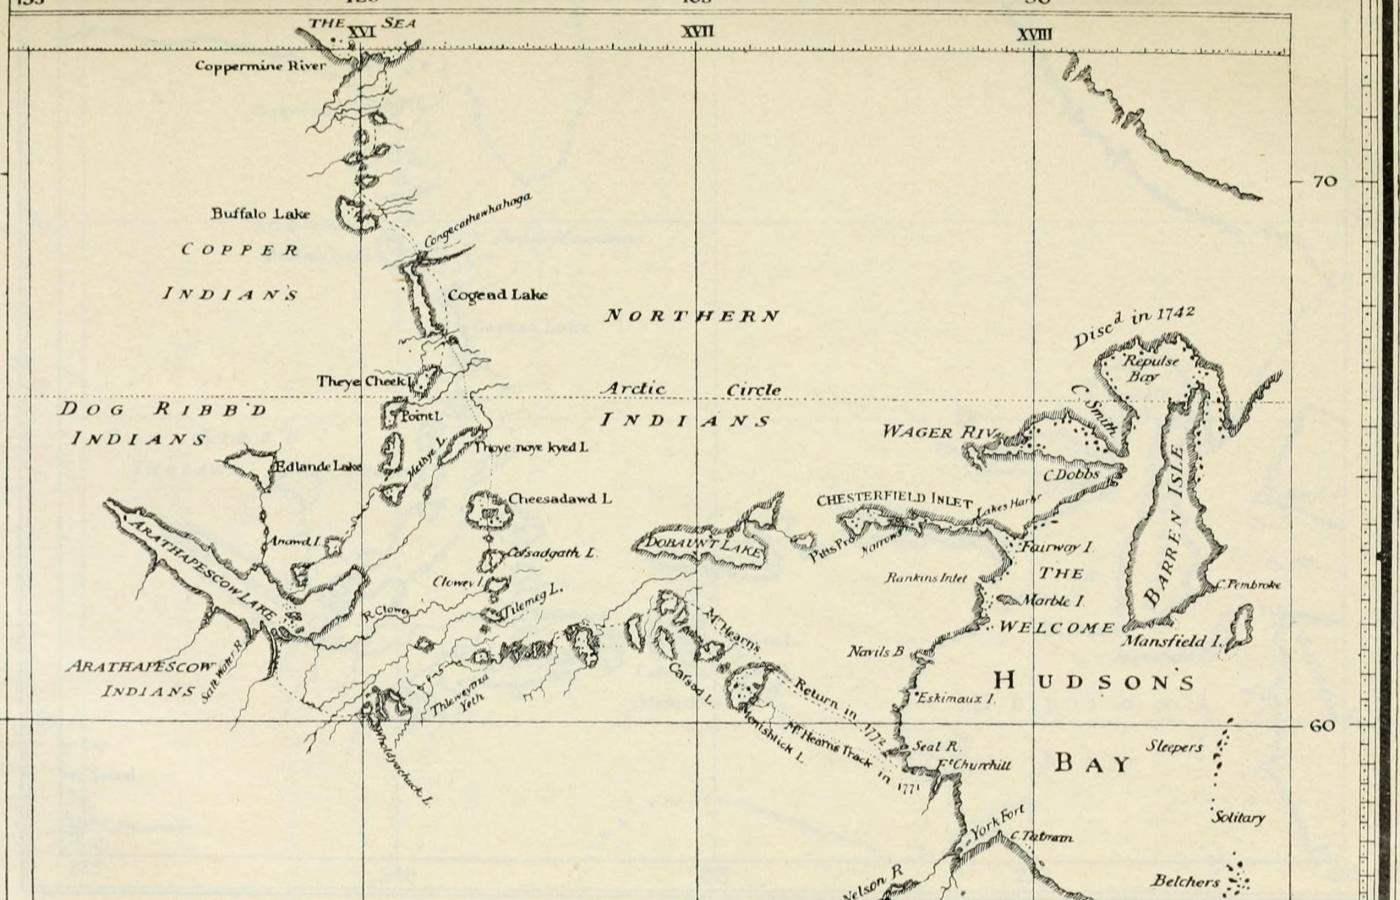 Map showing a journey from Hudson's Bay to the Arctic Ocean